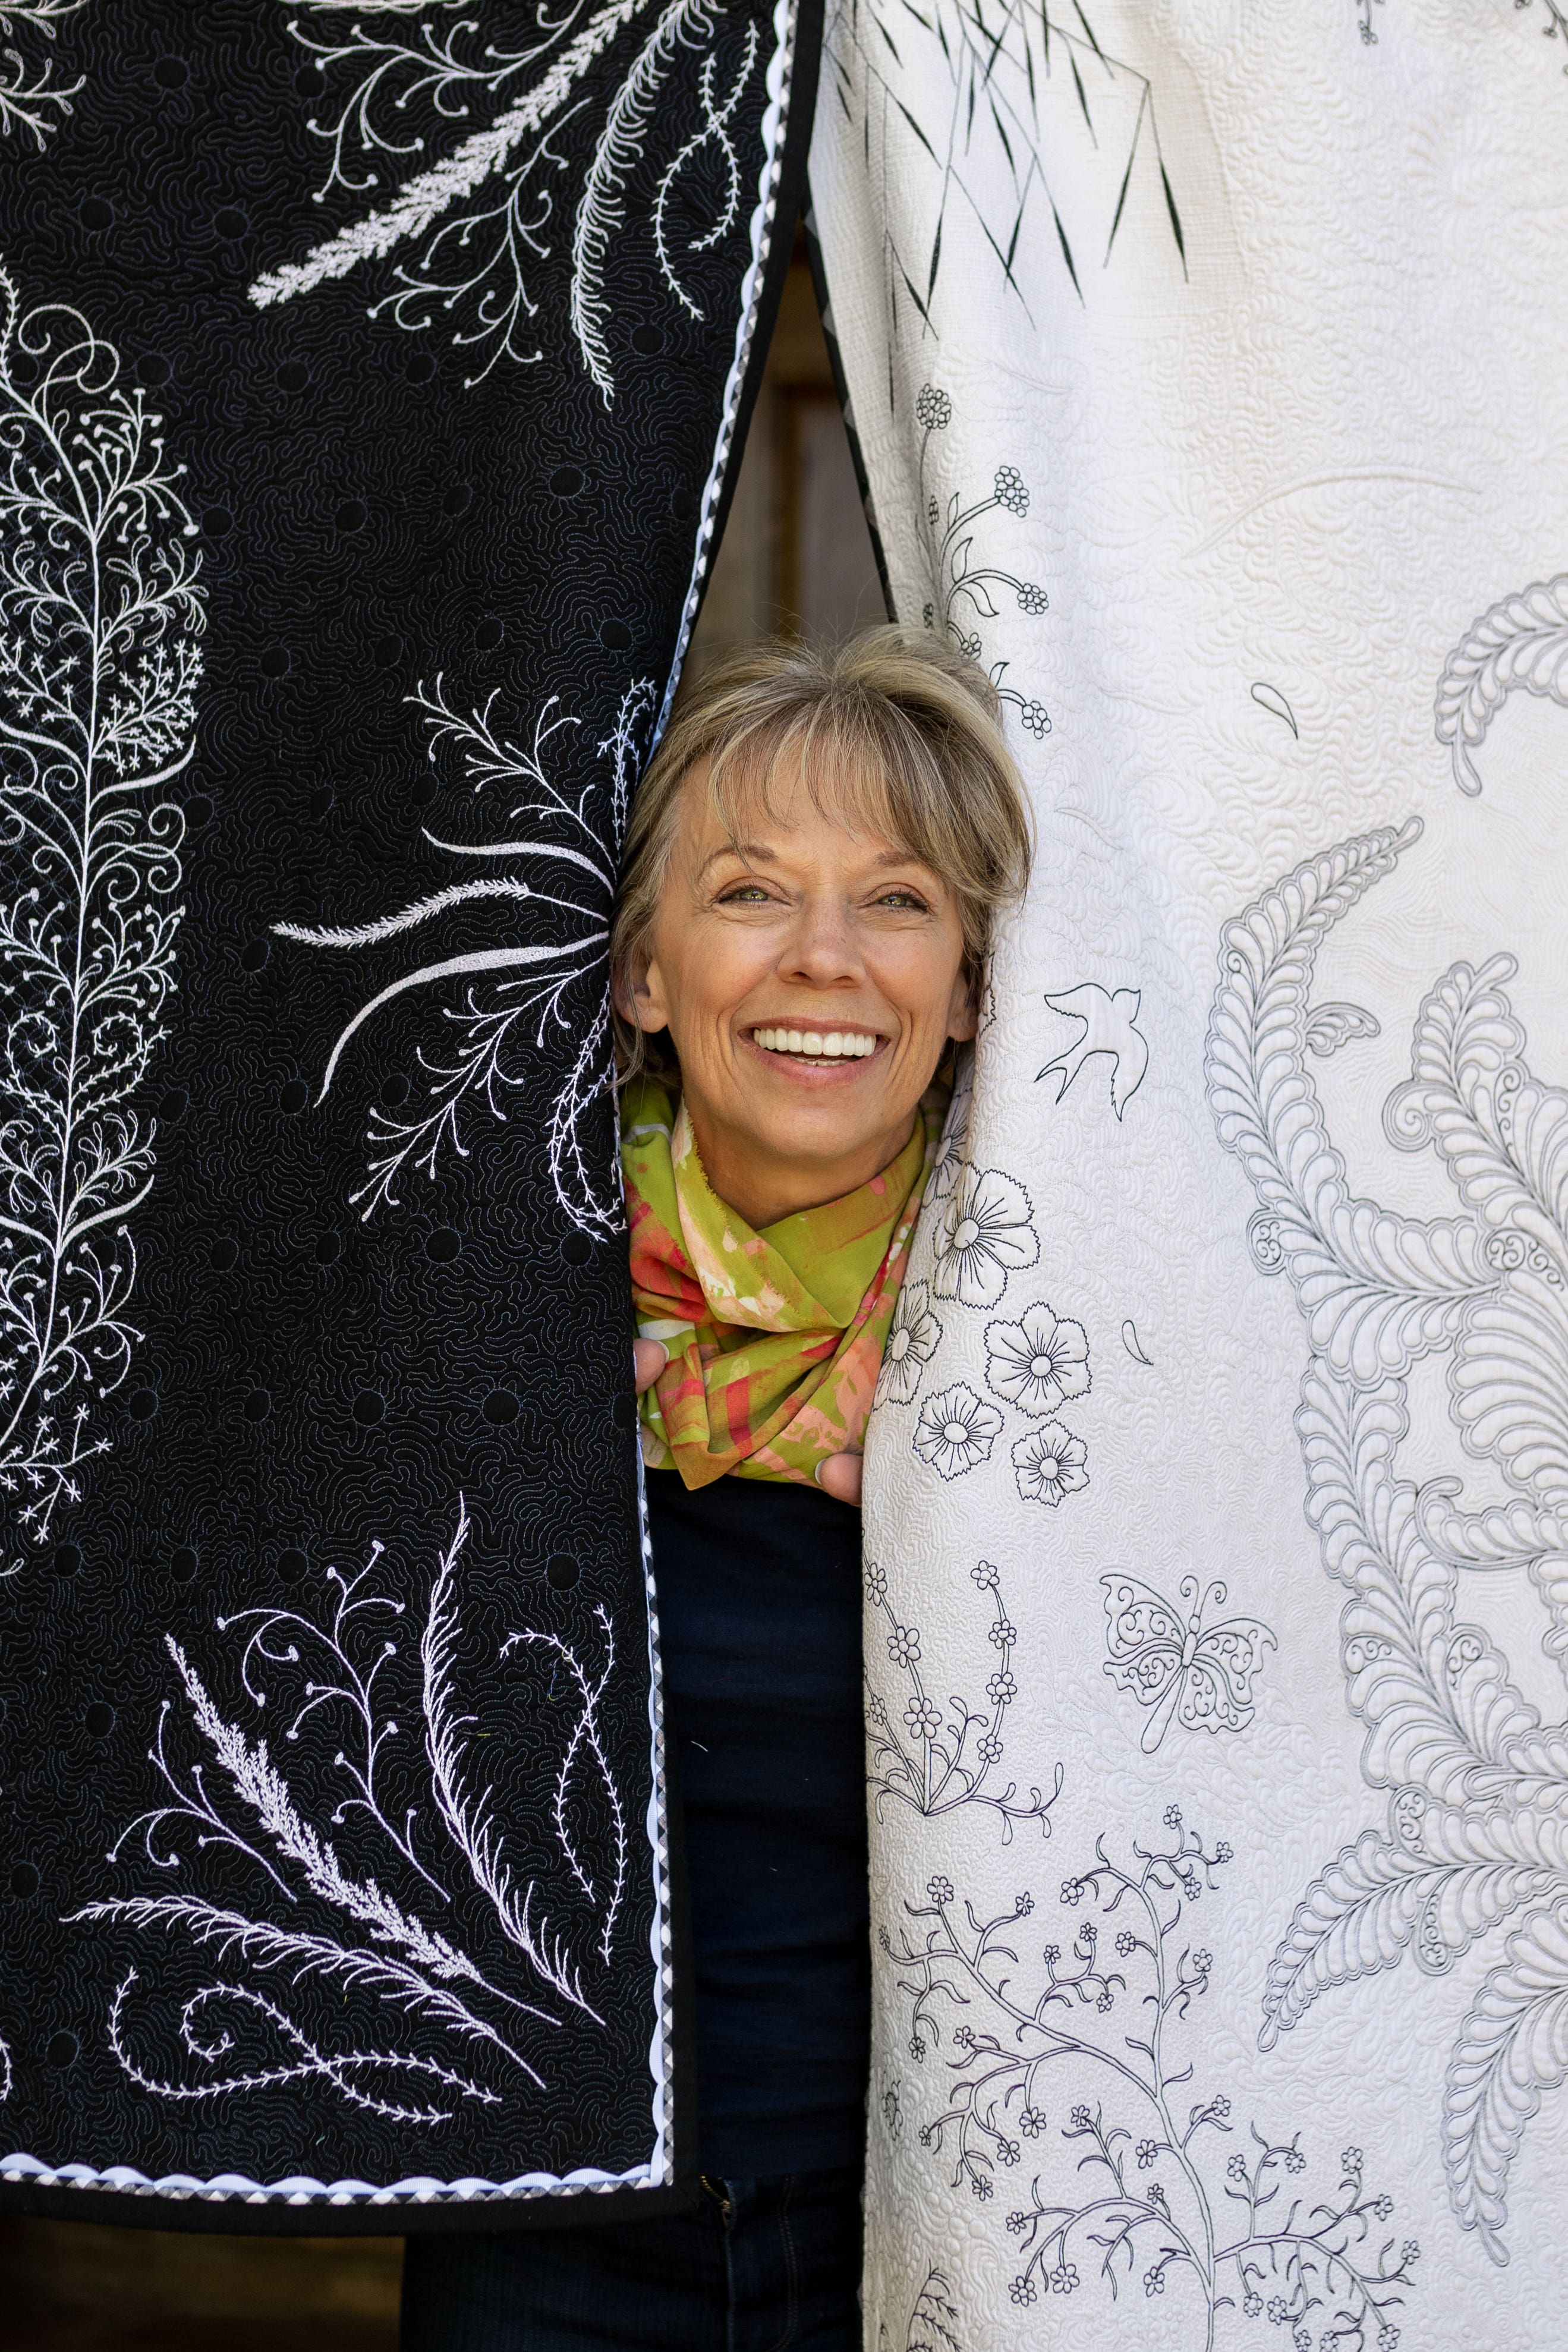 Jenny Lyon peeking out from between two very ornately quilted, hanging quilts.